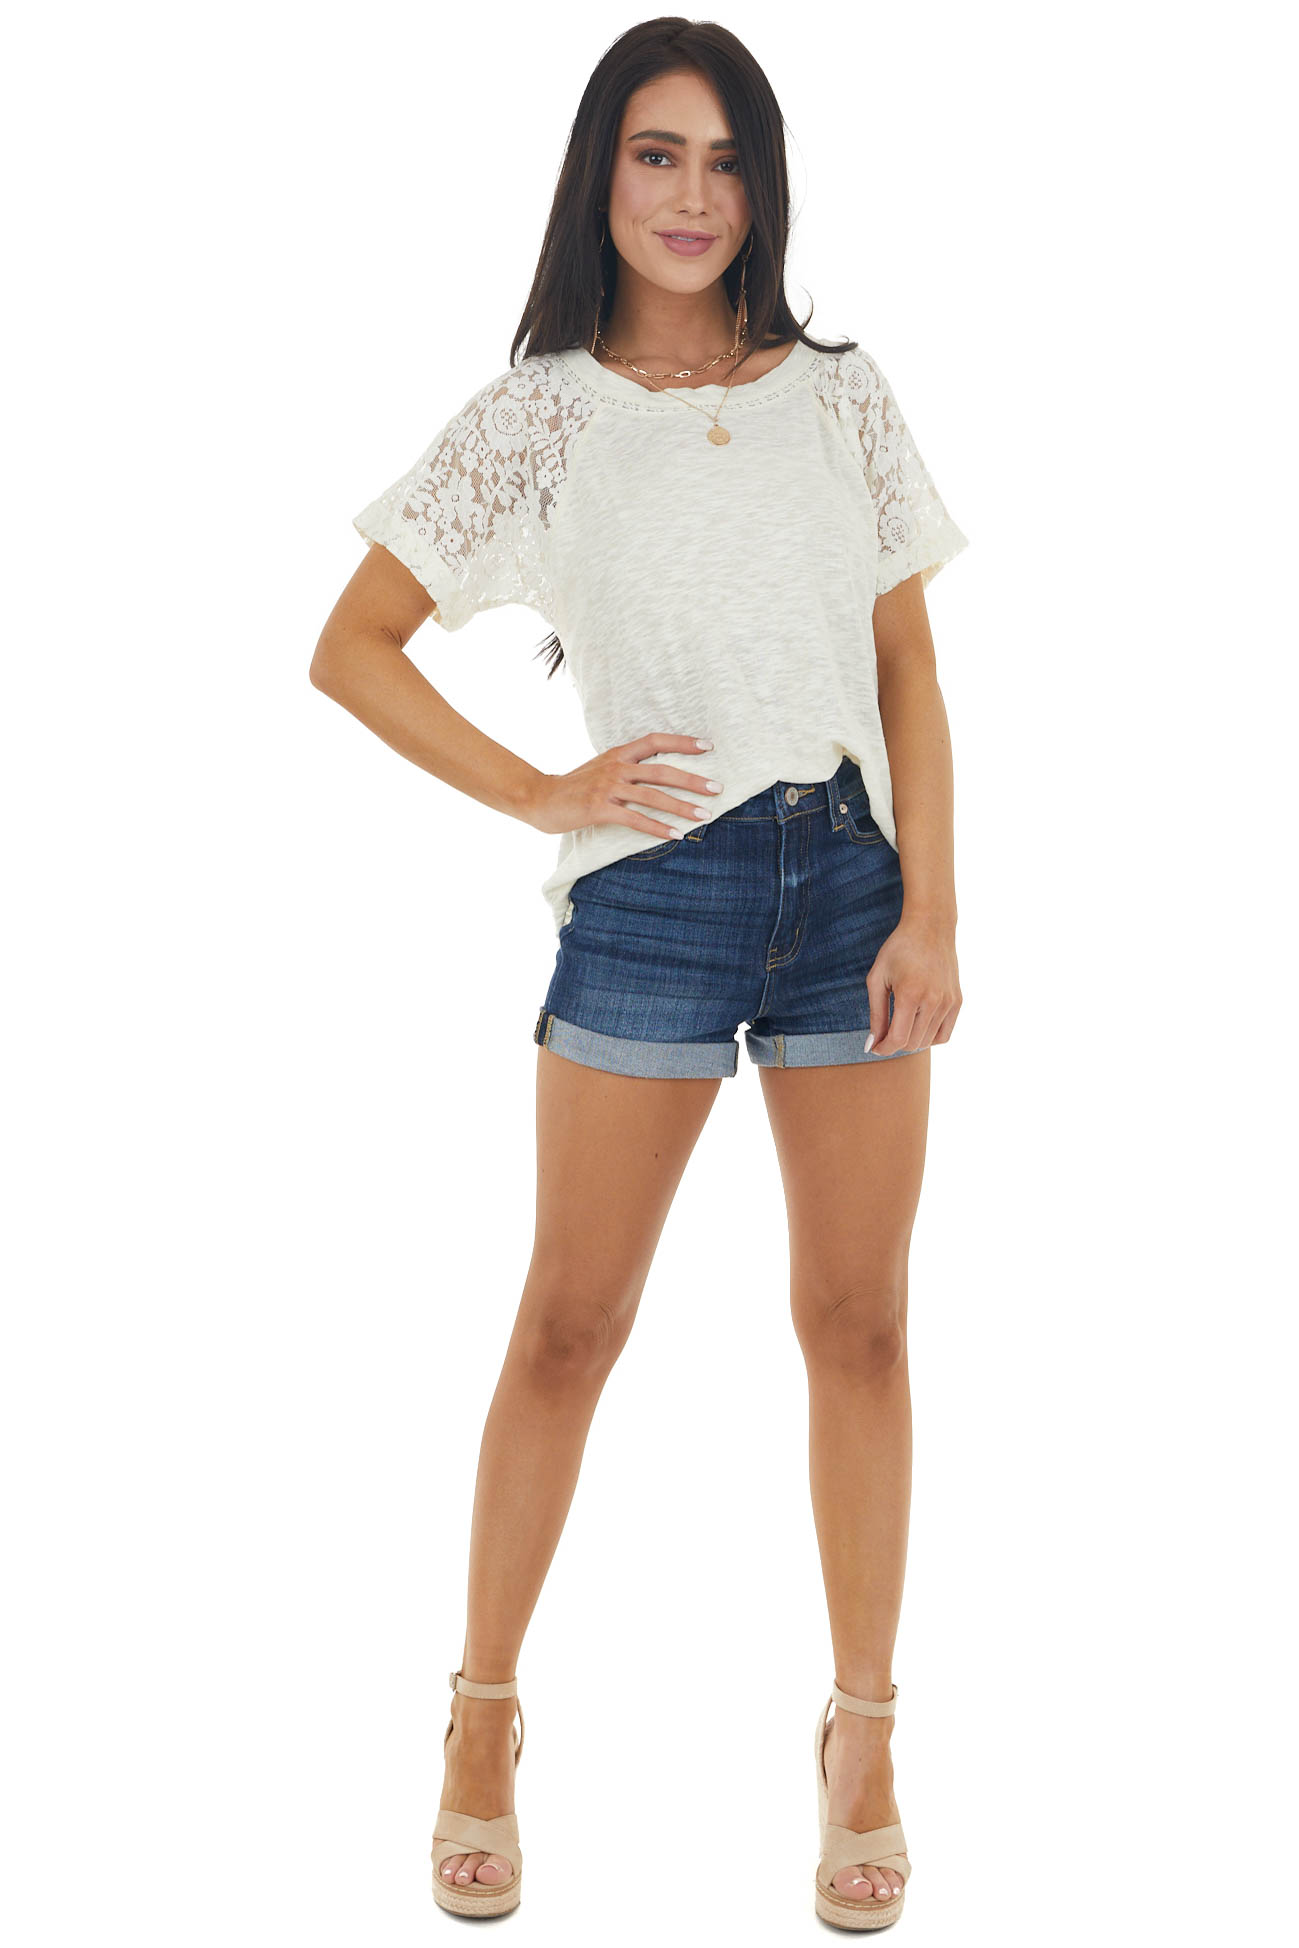 Heathered Cream Short Sleeve Knit Top with Lace Contrast